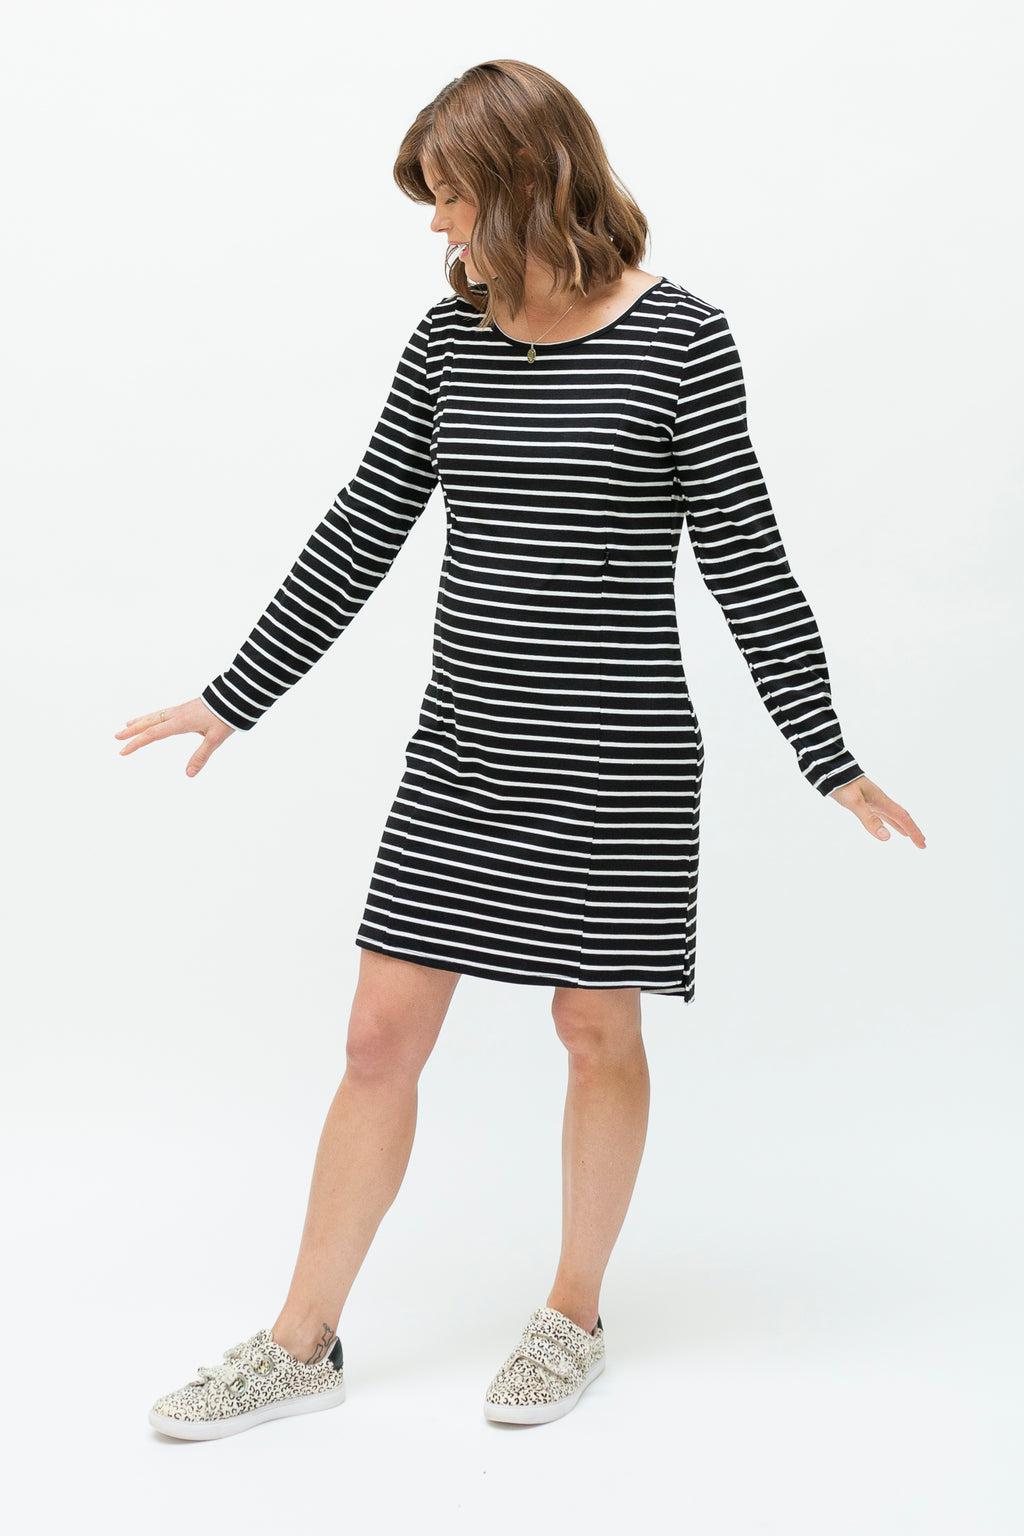 Stripe Dress - Black & White